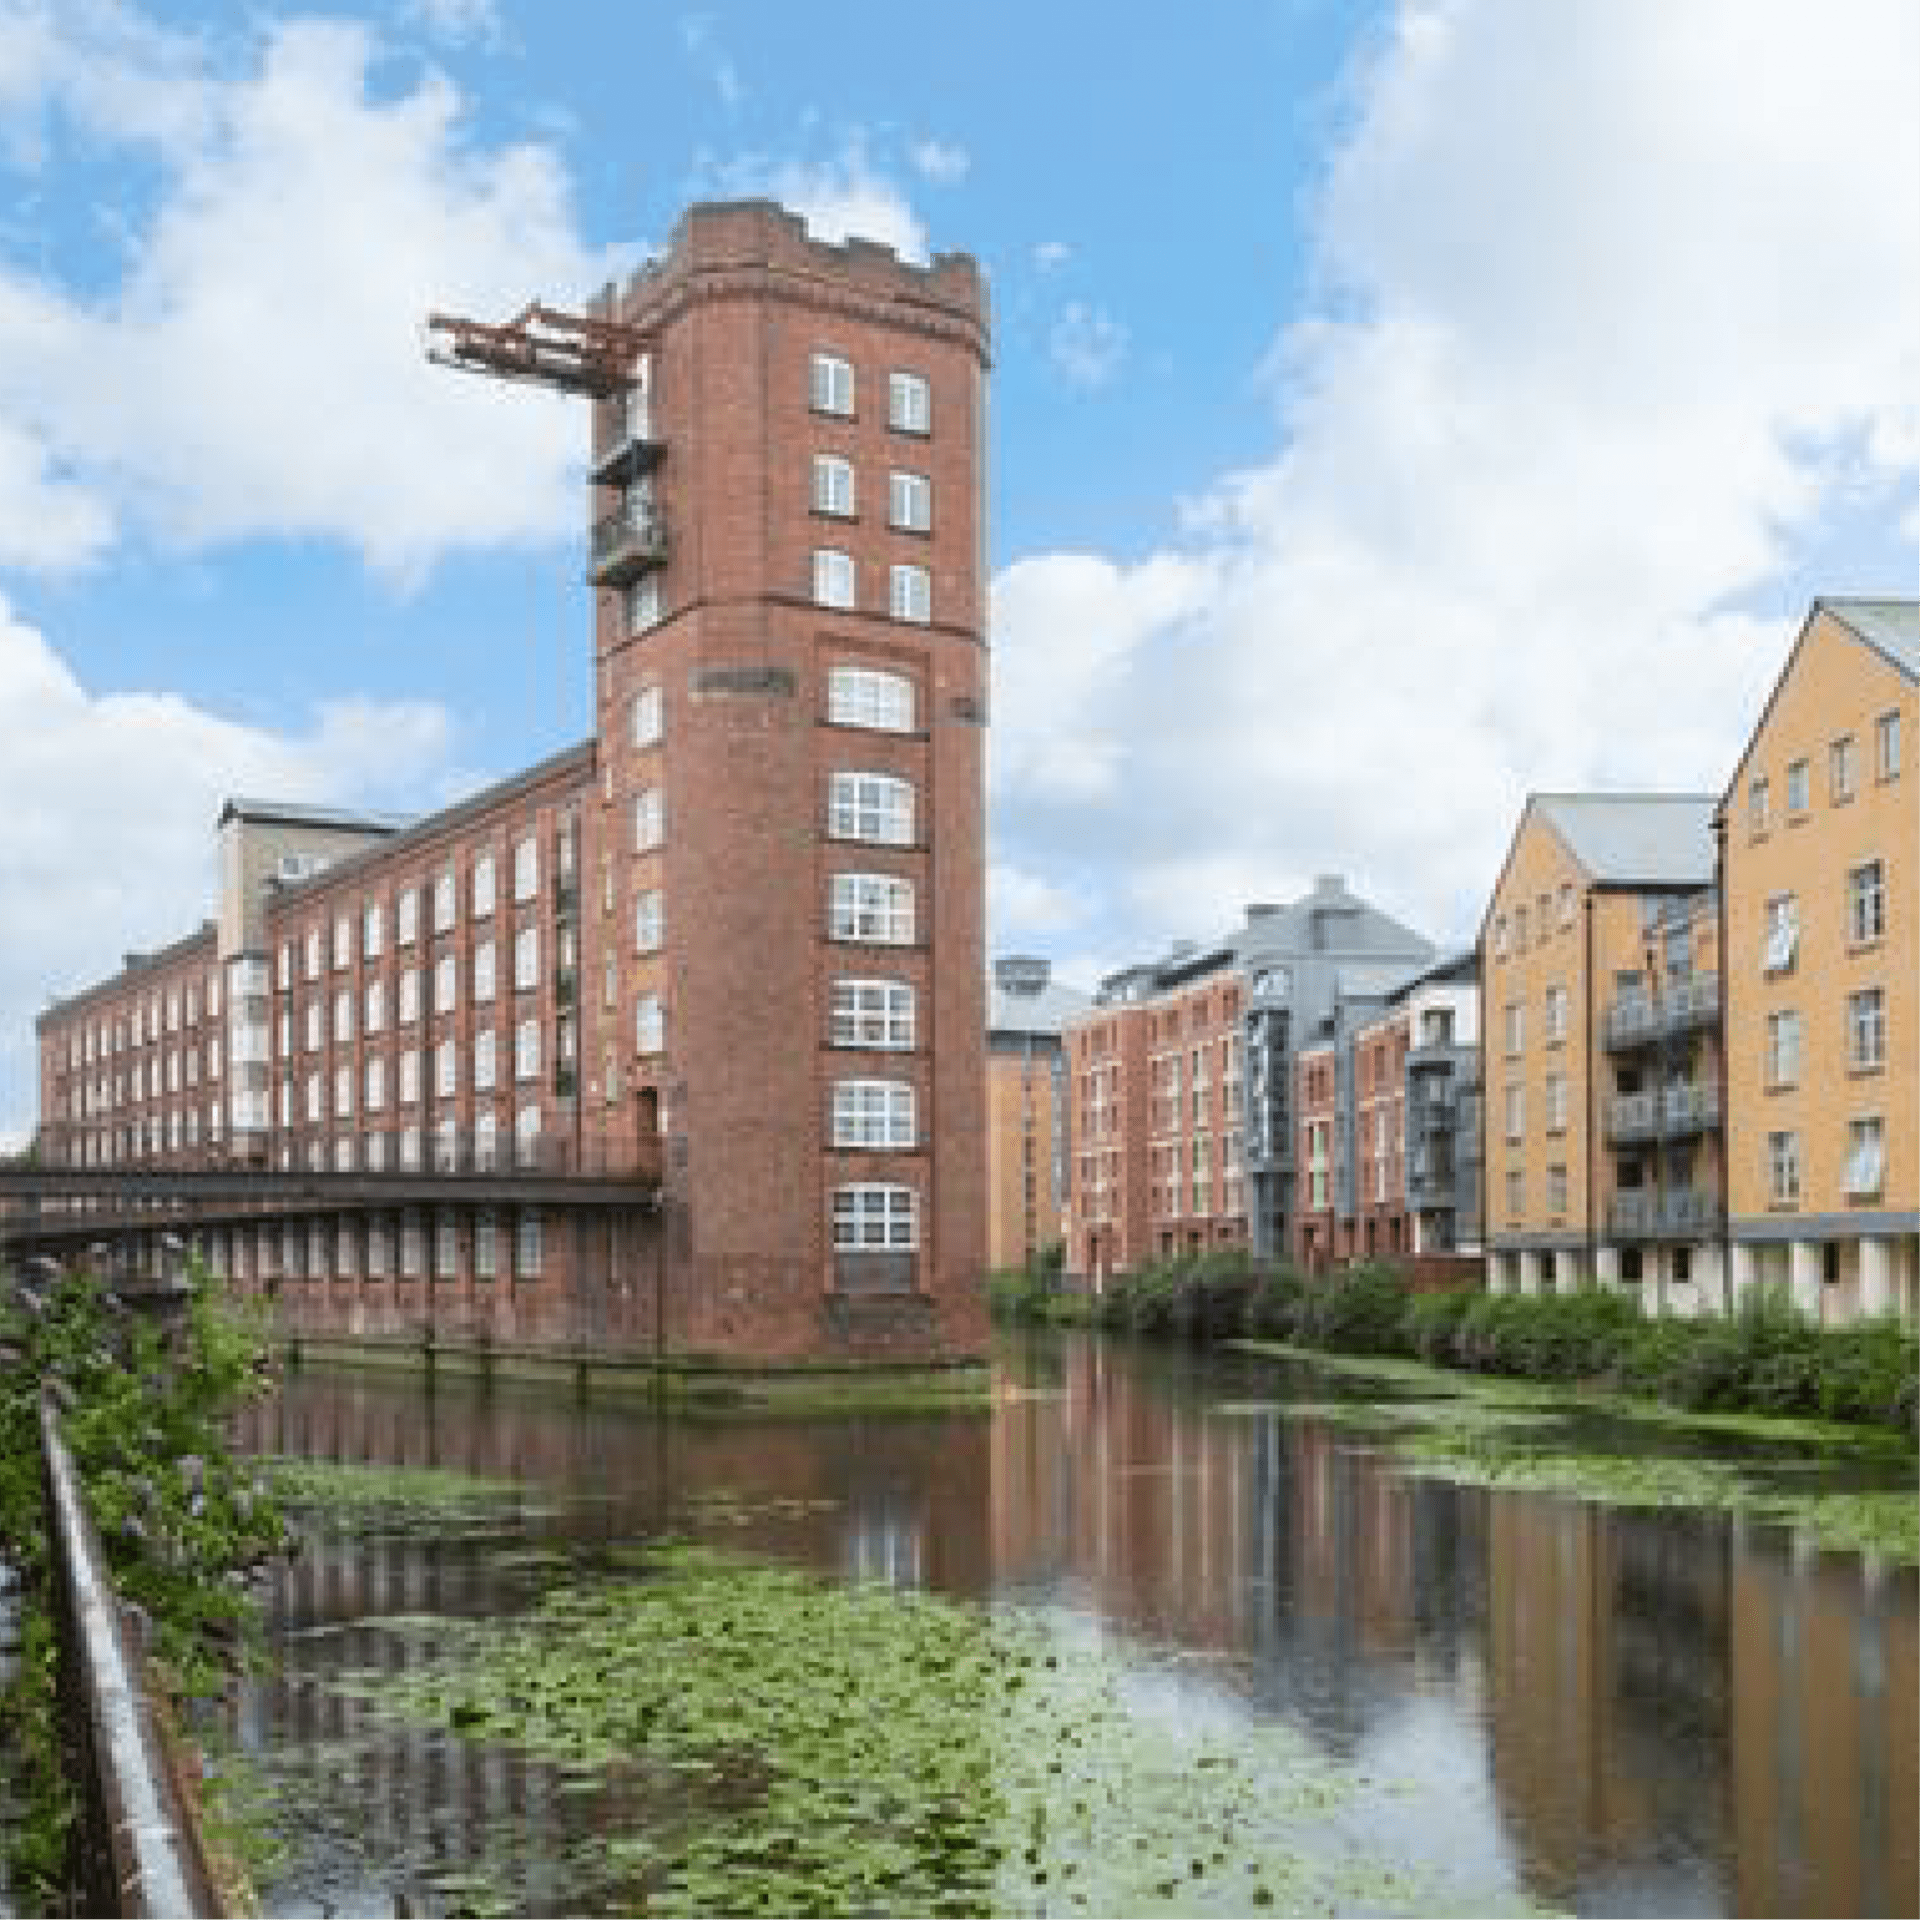 iMist residential case study where iMist installed a fire suppression system in Downtree Wharf London